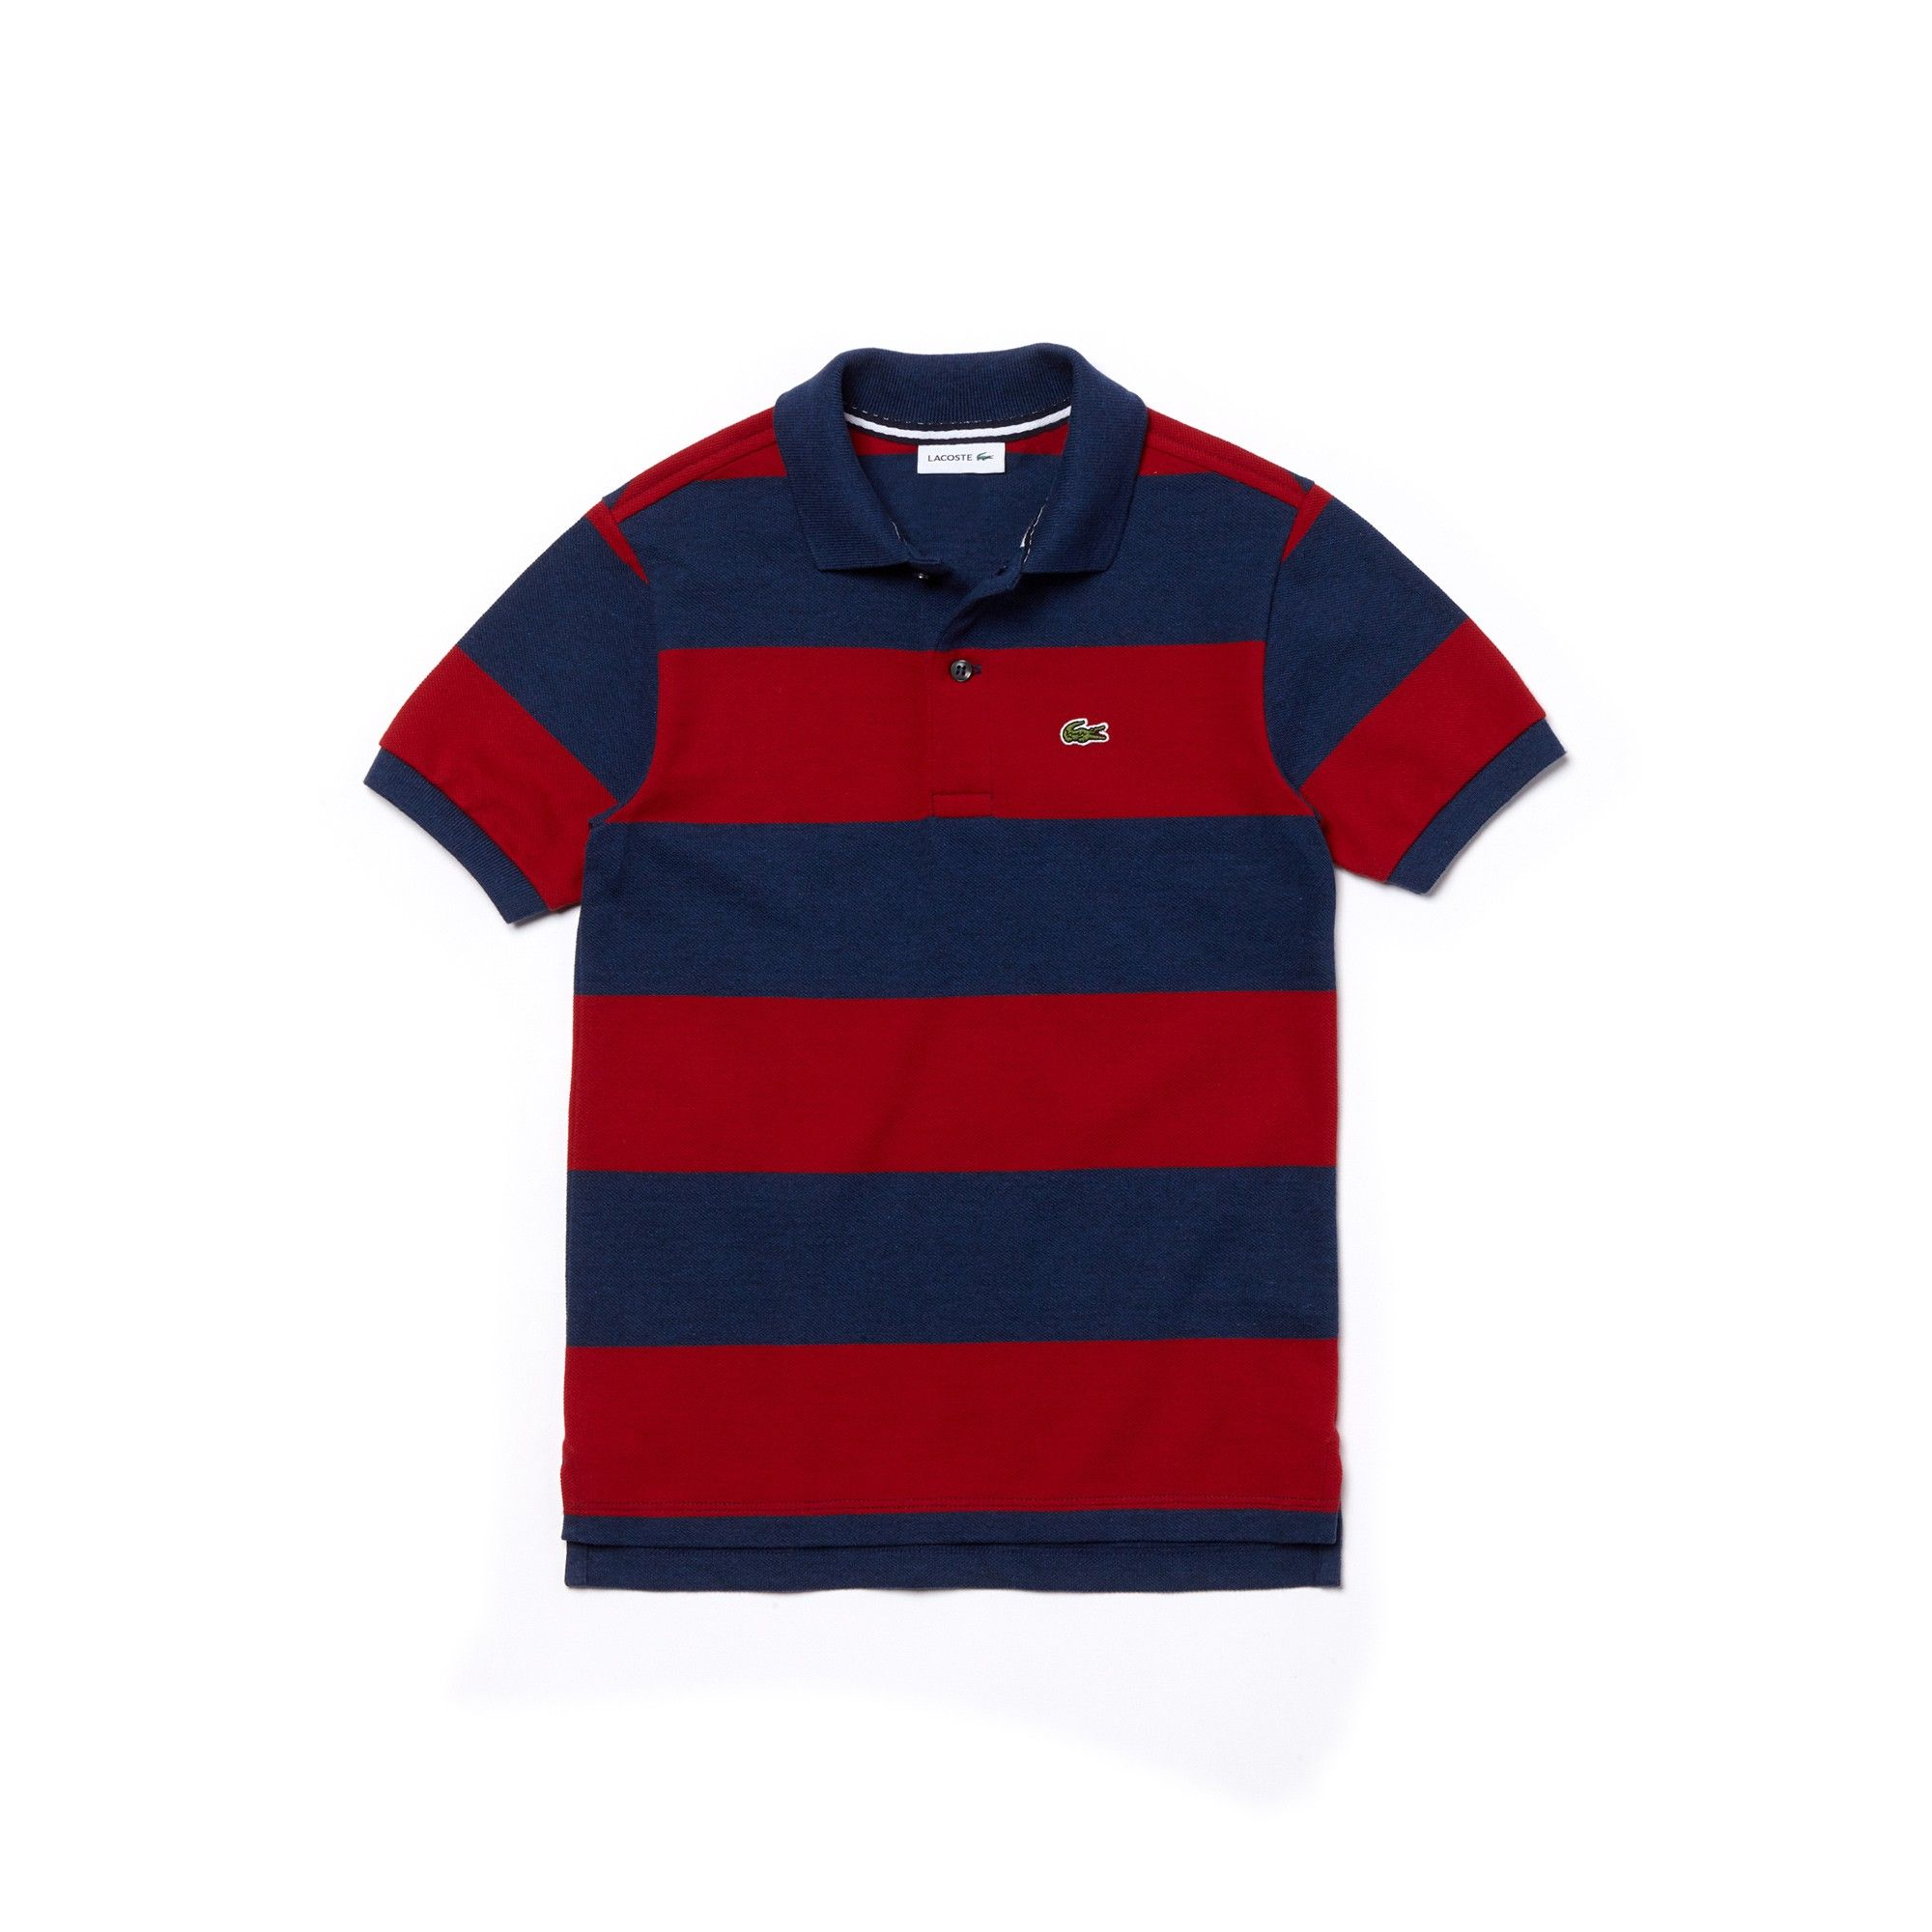 Lacoste Polo Lacoste Shirts Polo Shirts Lacoste From China From China mN8n0w